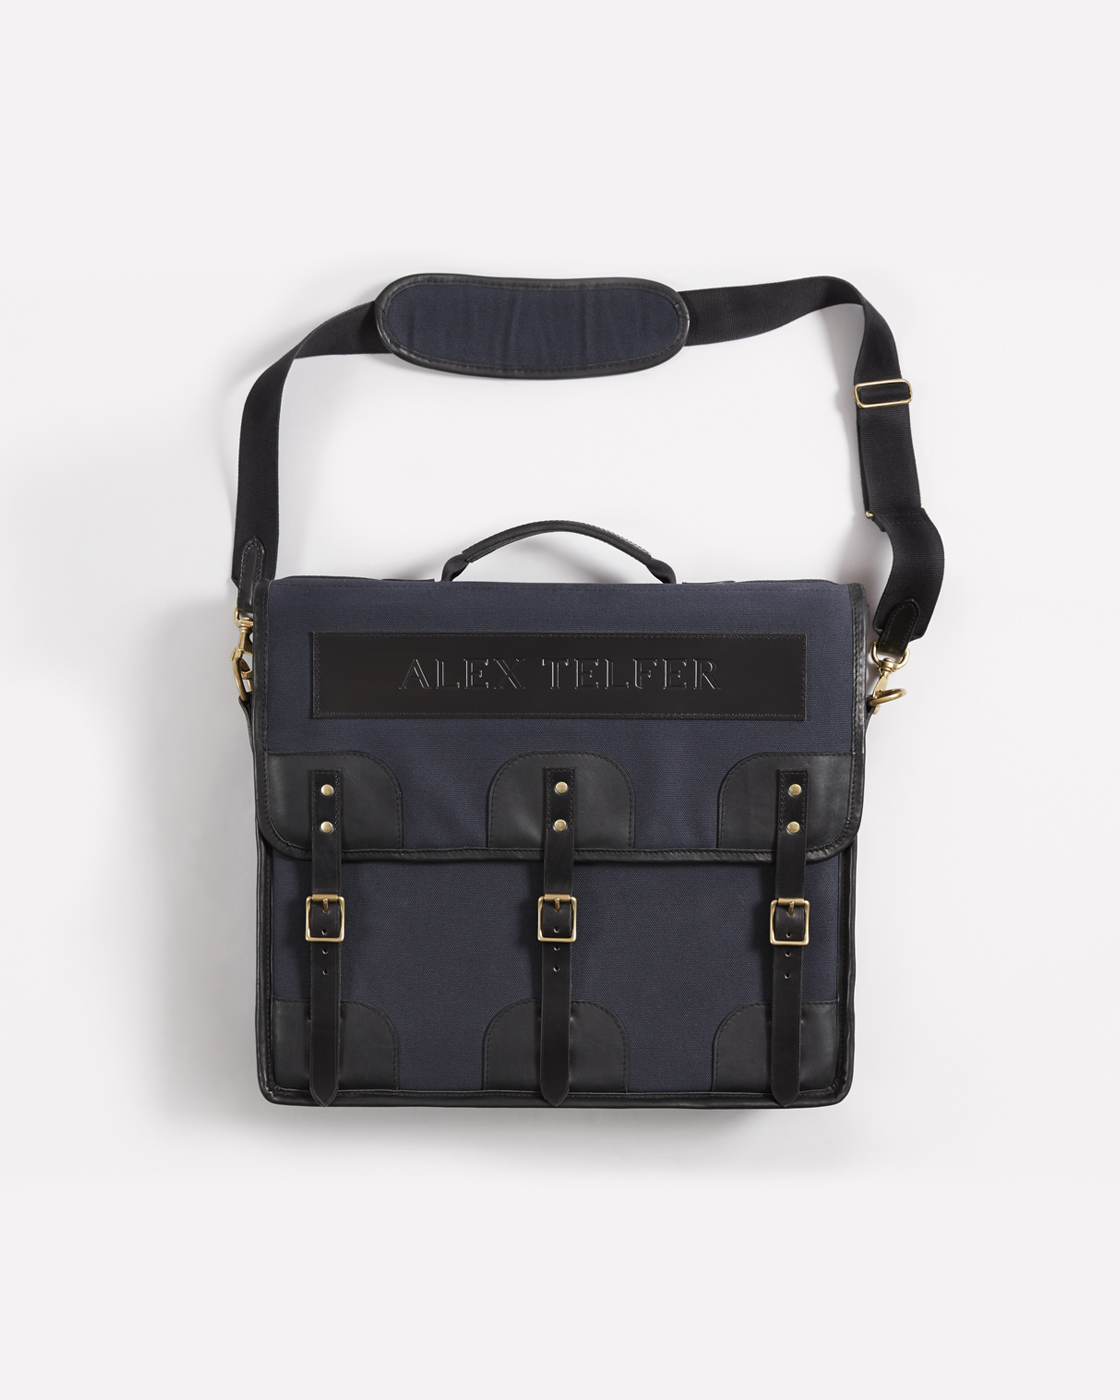 Alex Telfer Bag